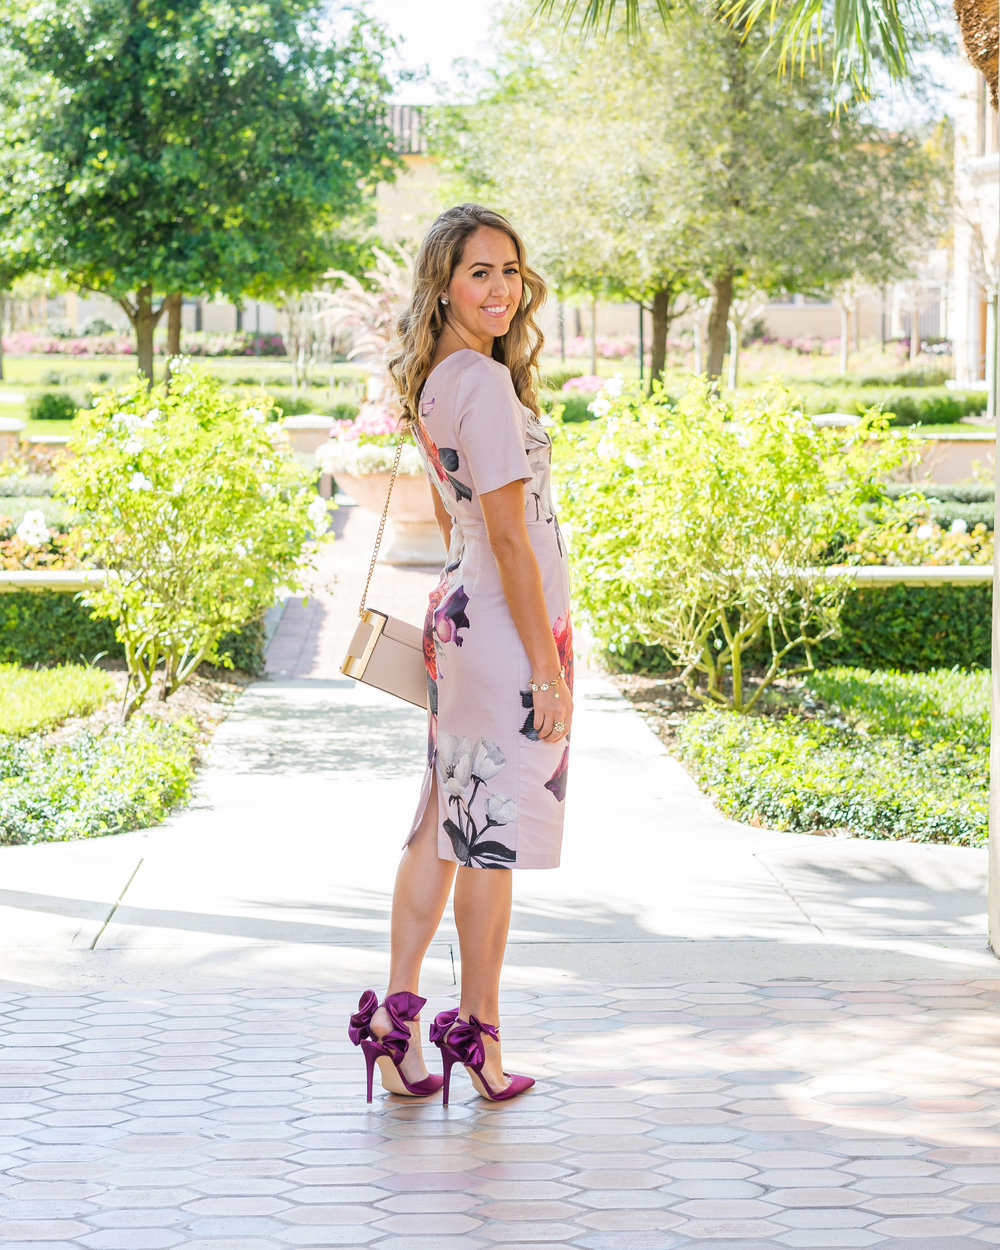 Floral sheath, purple heels